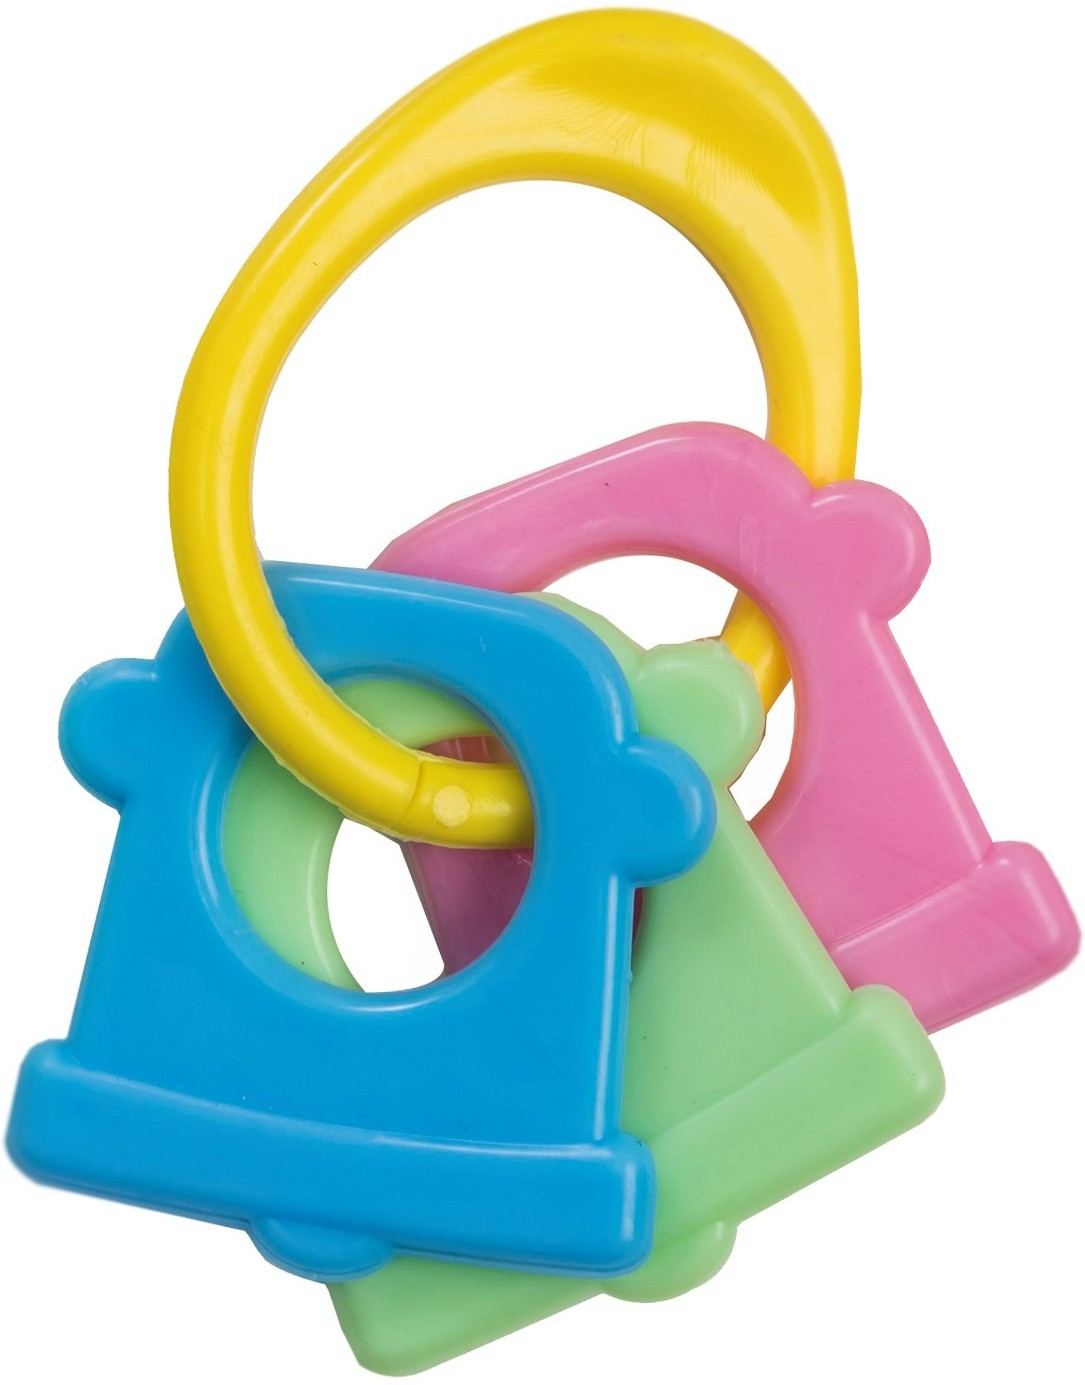 Love Baby First Toy - Cow Bell Rattle